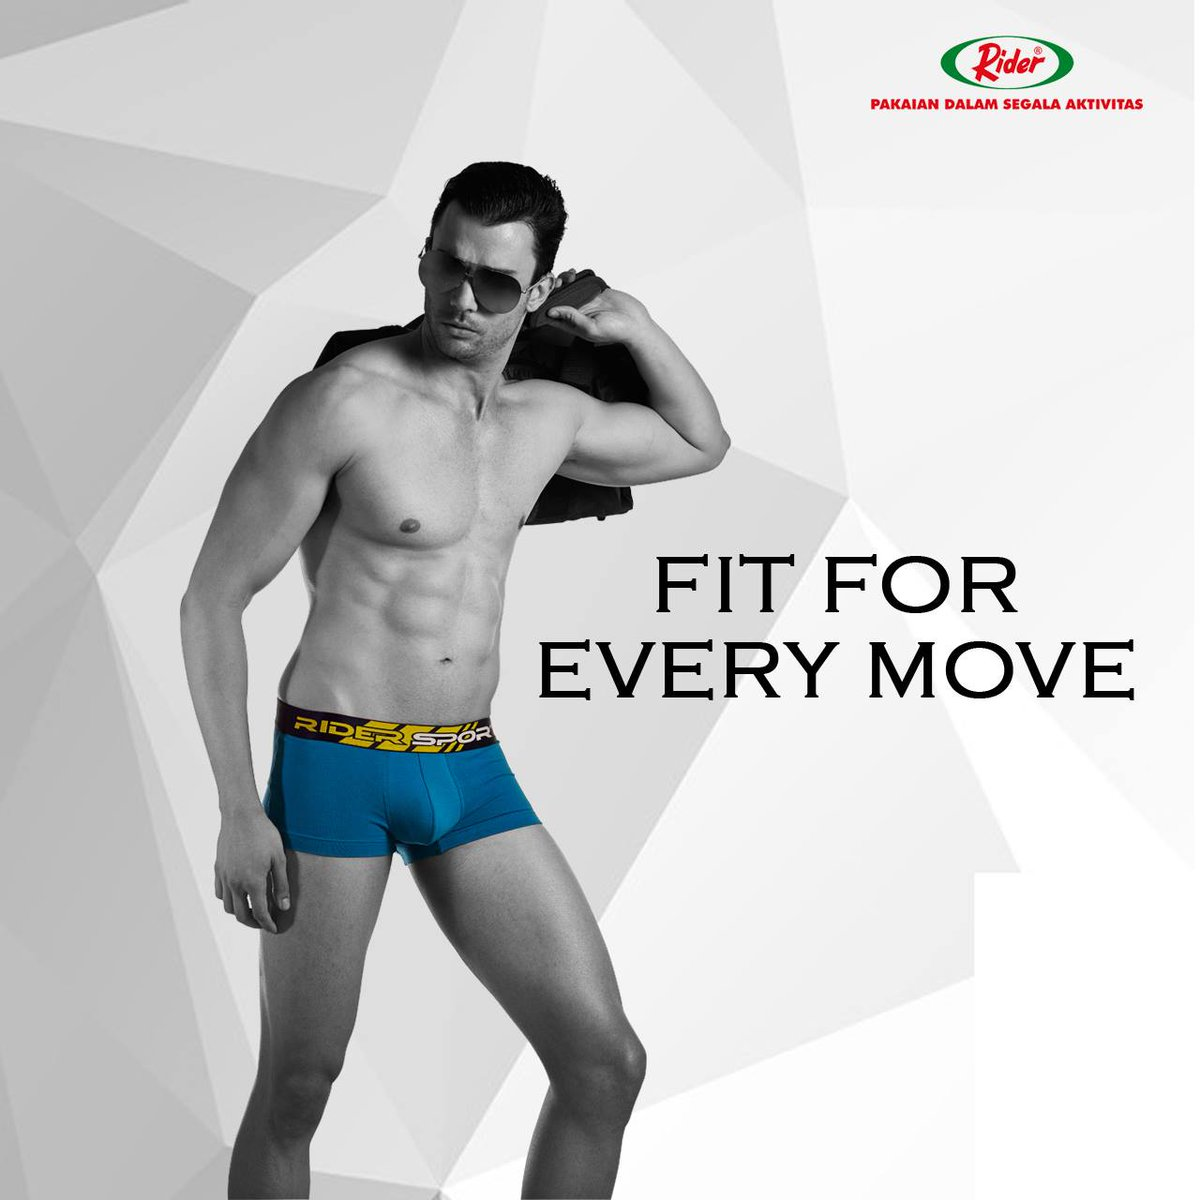 Dimana Beli Boxer Rider Sport R 763 B Pakaian Dalam Celana Source · Rider On Twitter Underwear Sport Fit For Every Move Https Joy Exercise Leggings Navy And ...